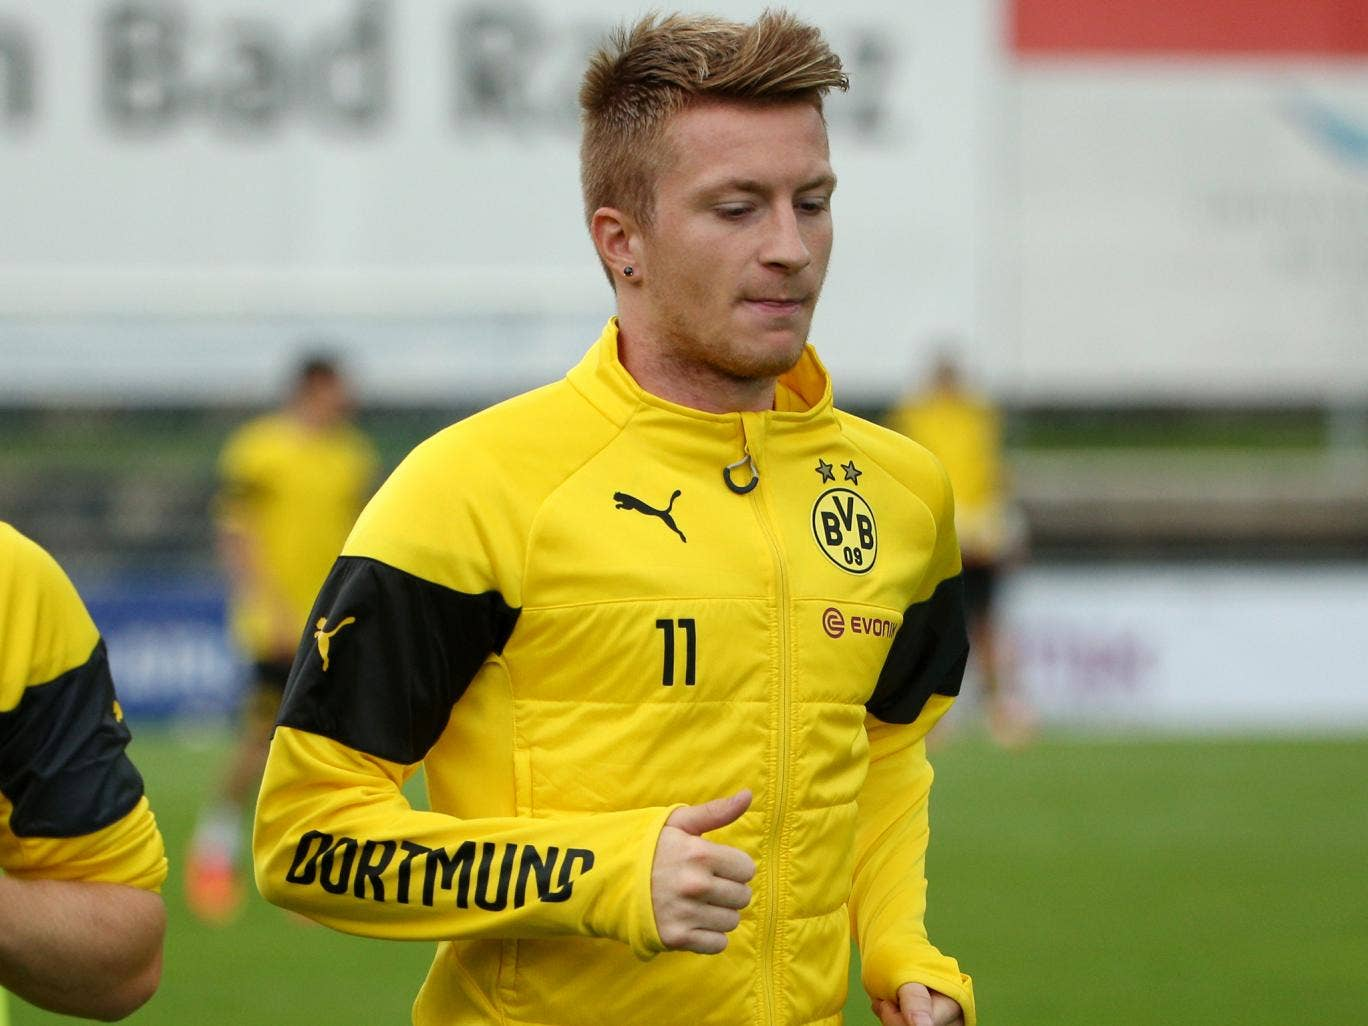 Marco Reus is unsettled at Borussia Dortmund